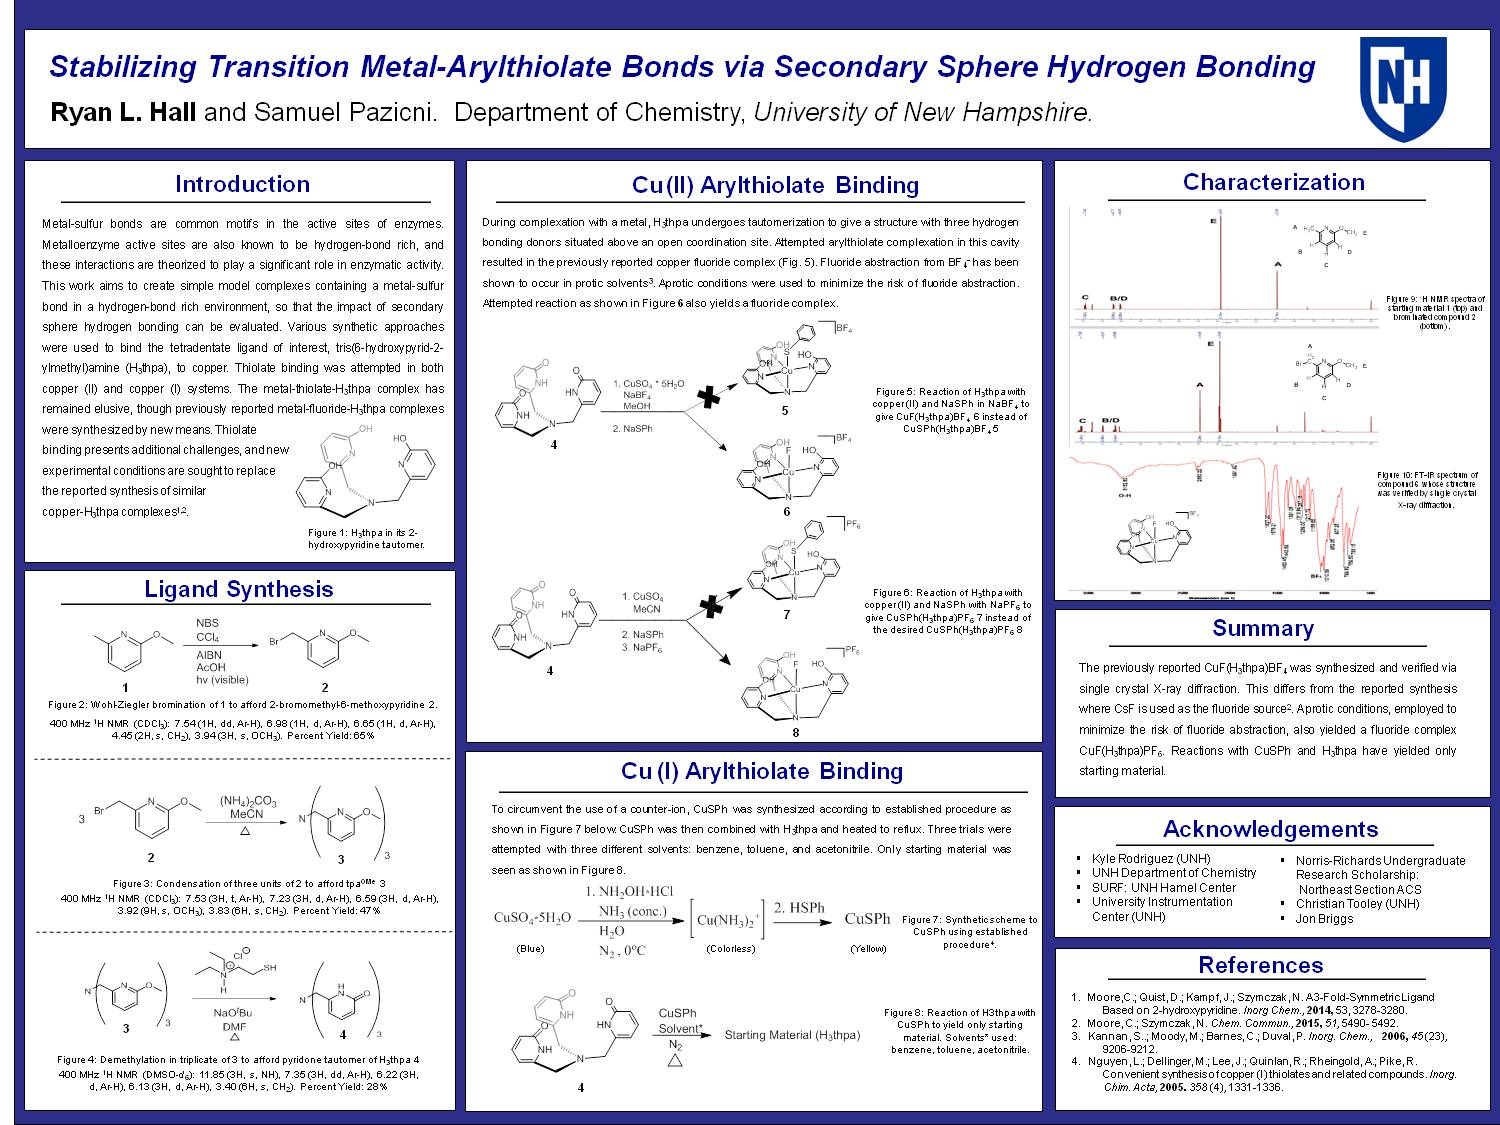 Stabilizing Transition Metal-Arylthiolate Bonds Via Secondary Sphere Hydrogen Bonding by rll367